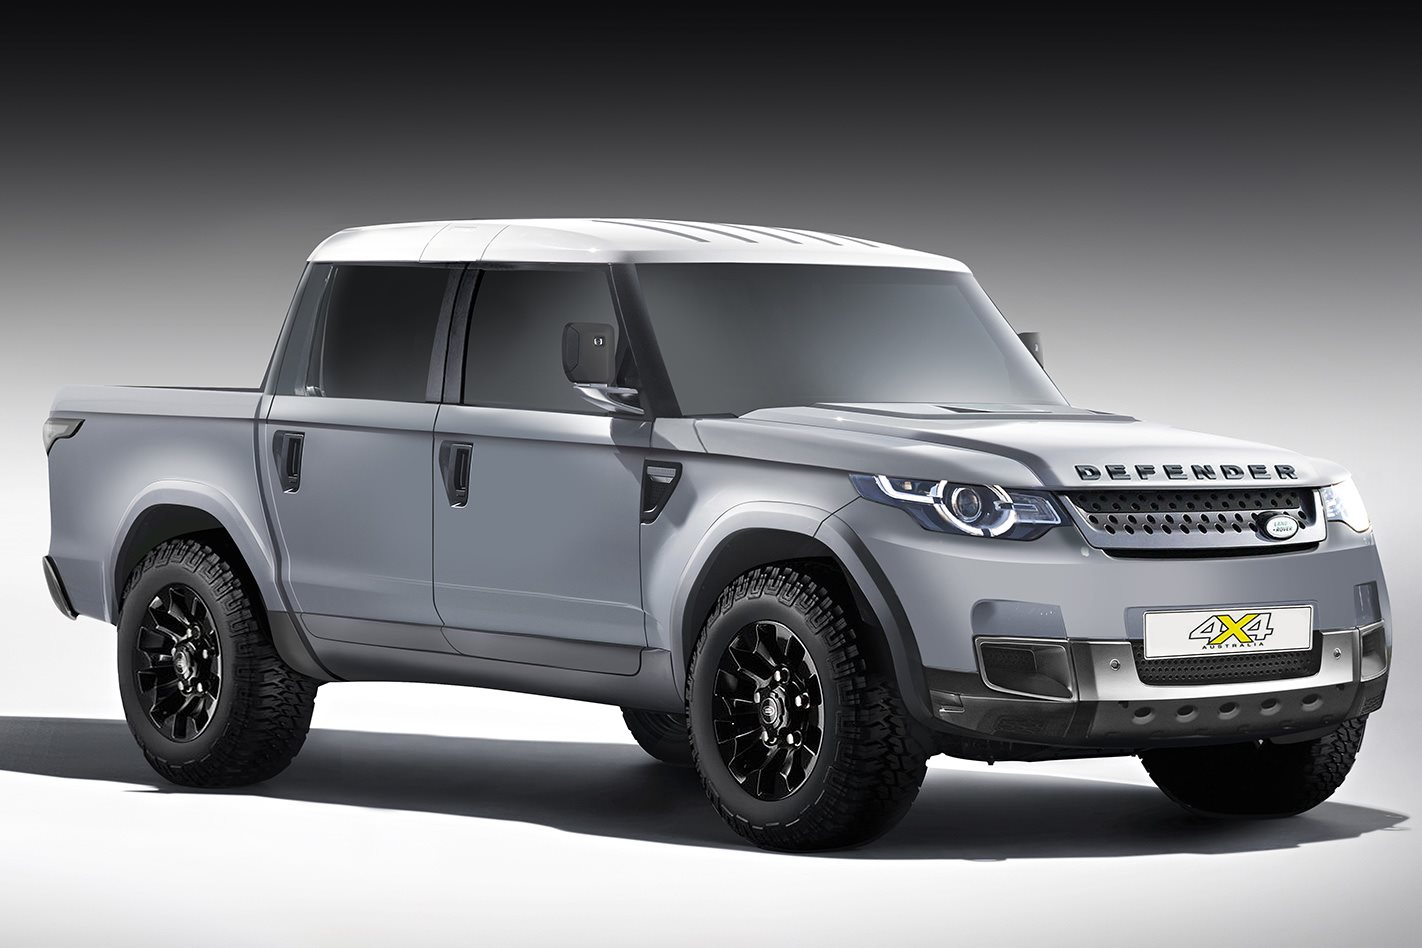 94 Best 2020 Land Rover Defender Release Date